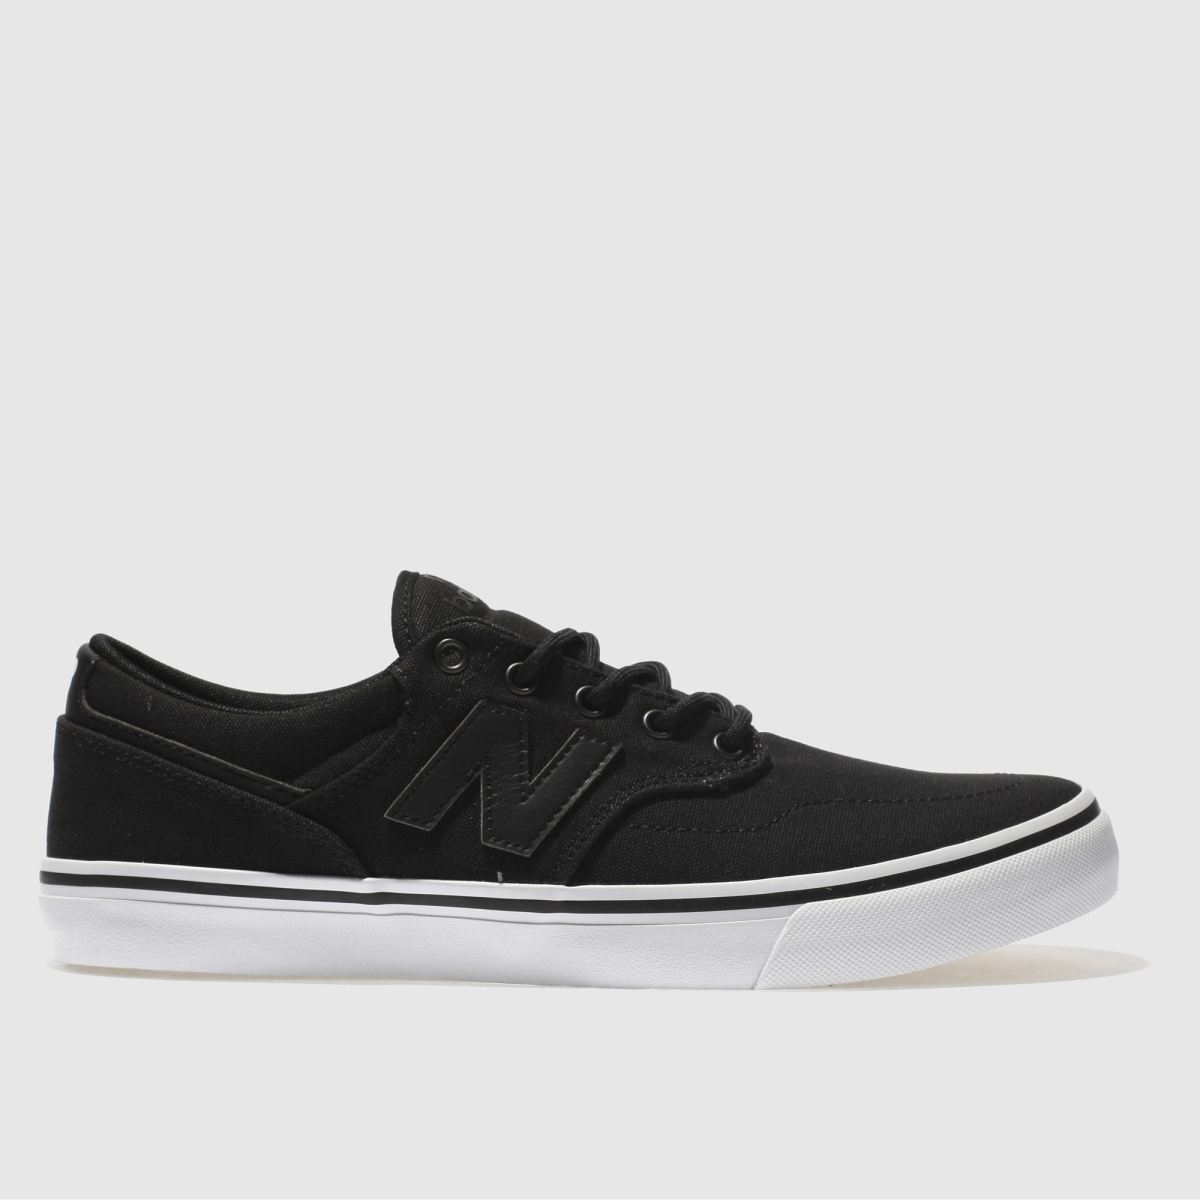 New Balance Black All Coasts 331 Trainers